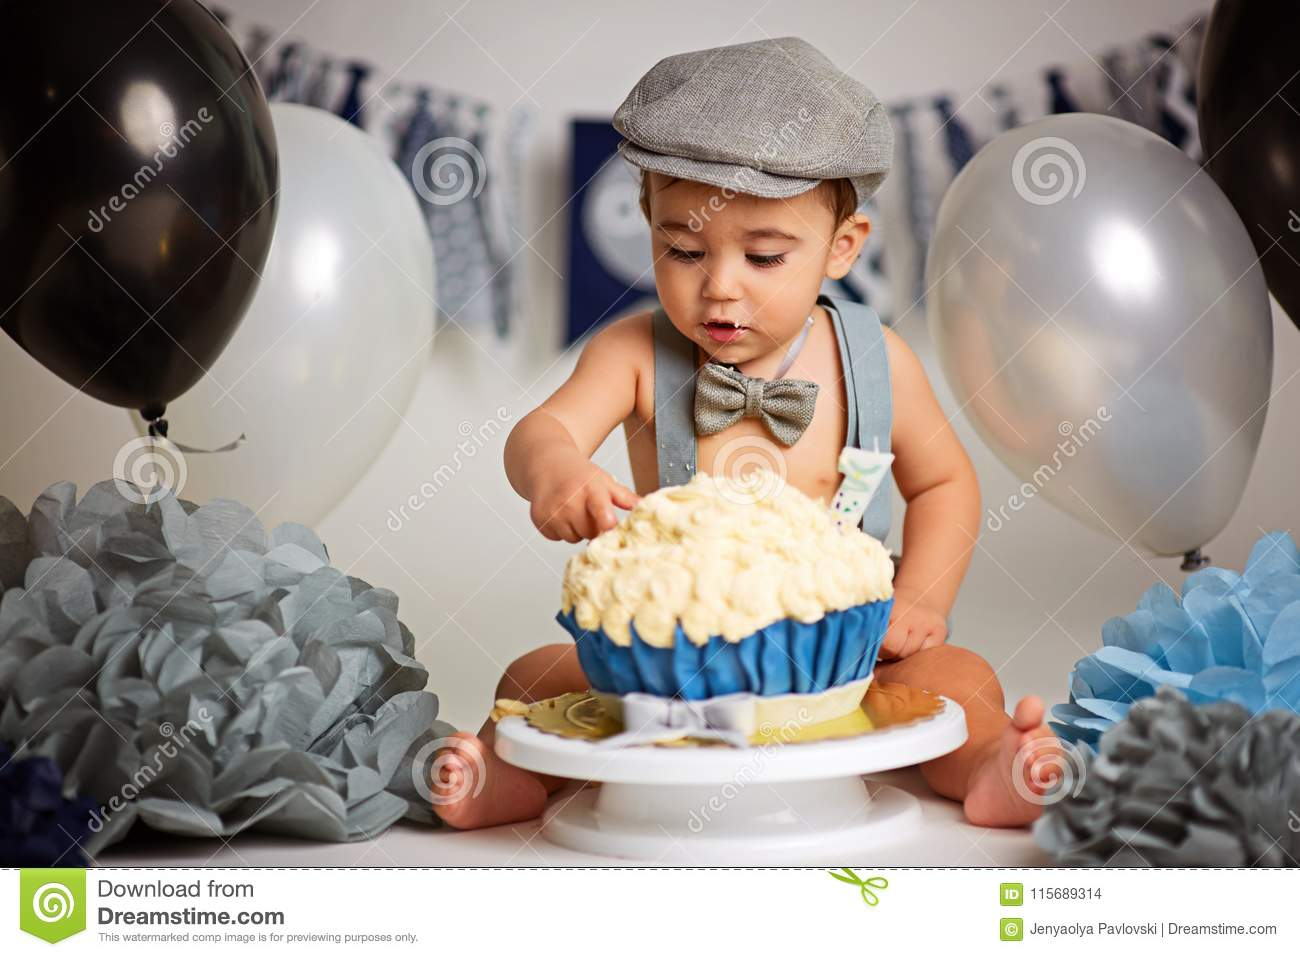 Peachy Boy Birthday Cake Smash Stock Photo Image Of Close 115689314 Funny Birthday Cards Online Elaedamsfinfo